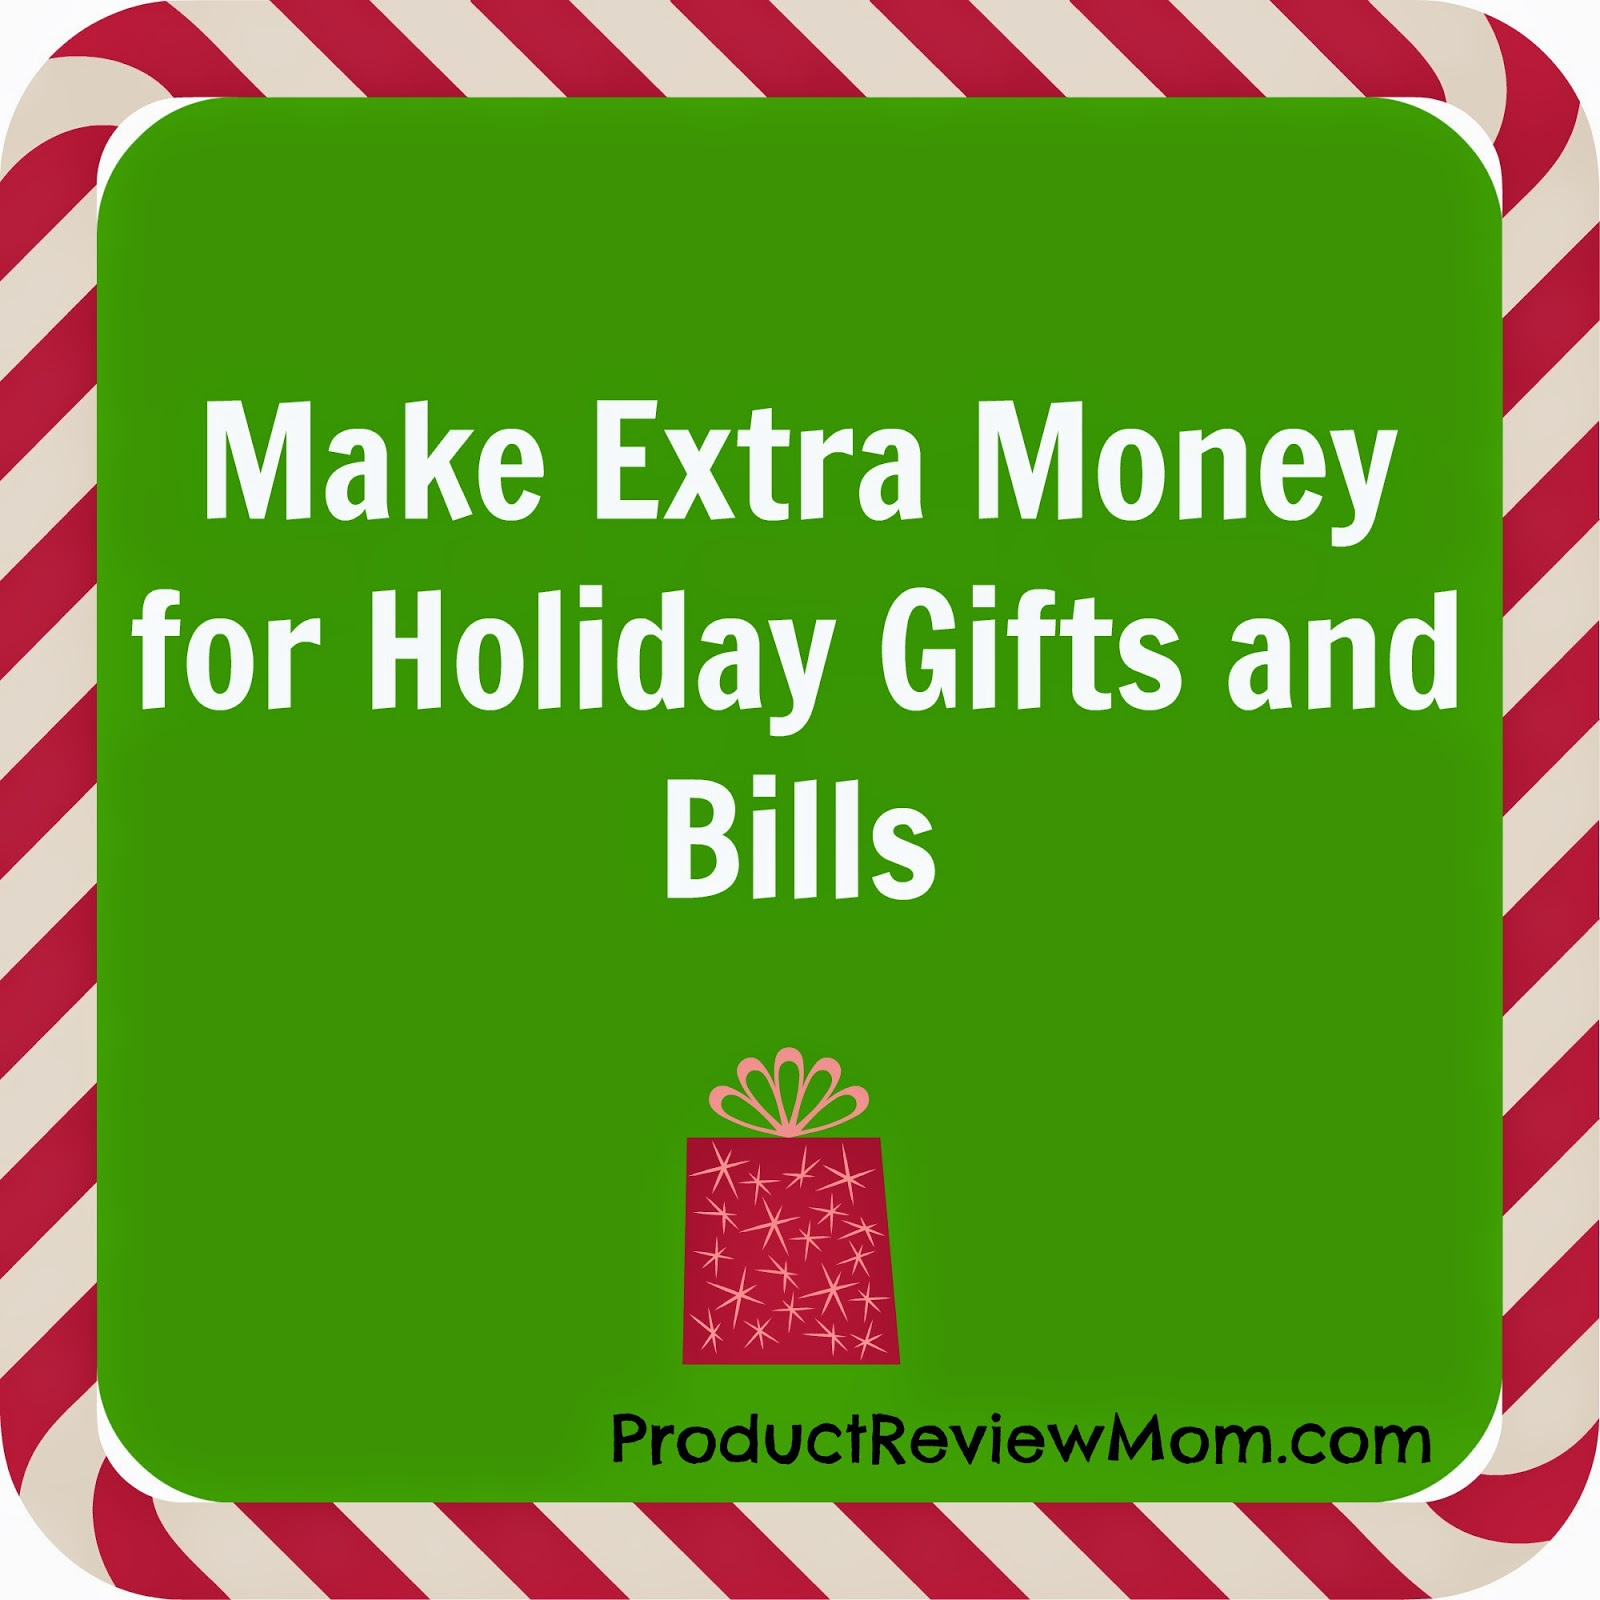 Make Extra Money for Holiday Gifts and Bills- via www.Productreviewmom.com